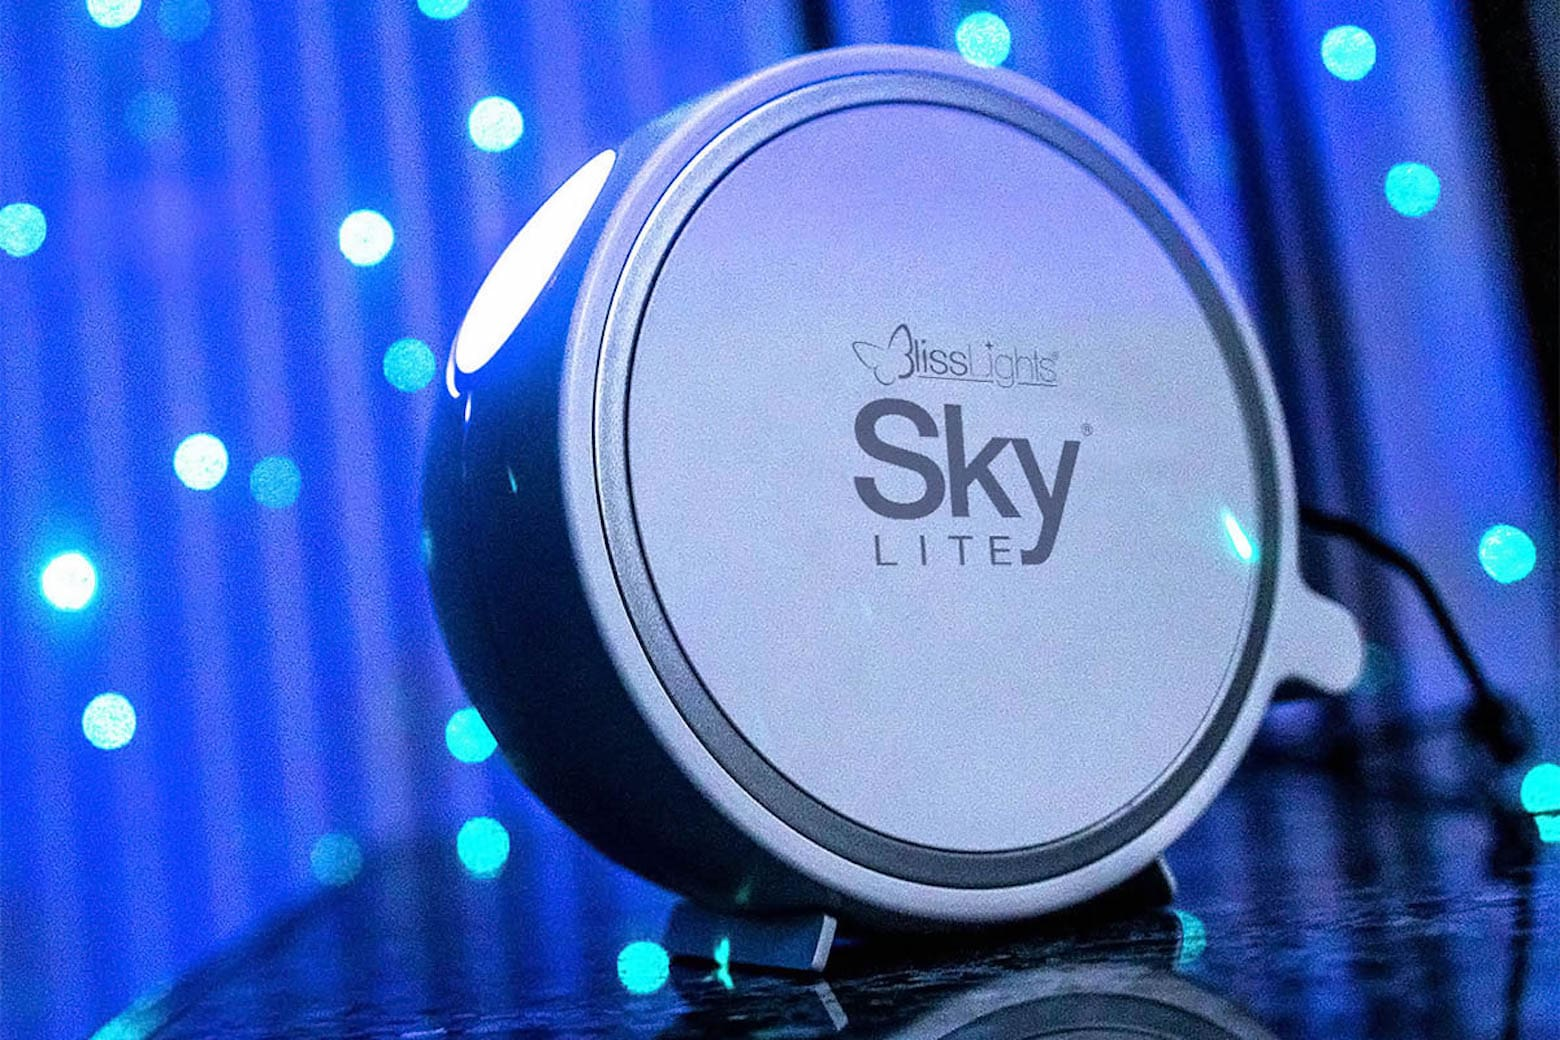 Turn your bedroom into a mini galaxy with this projector